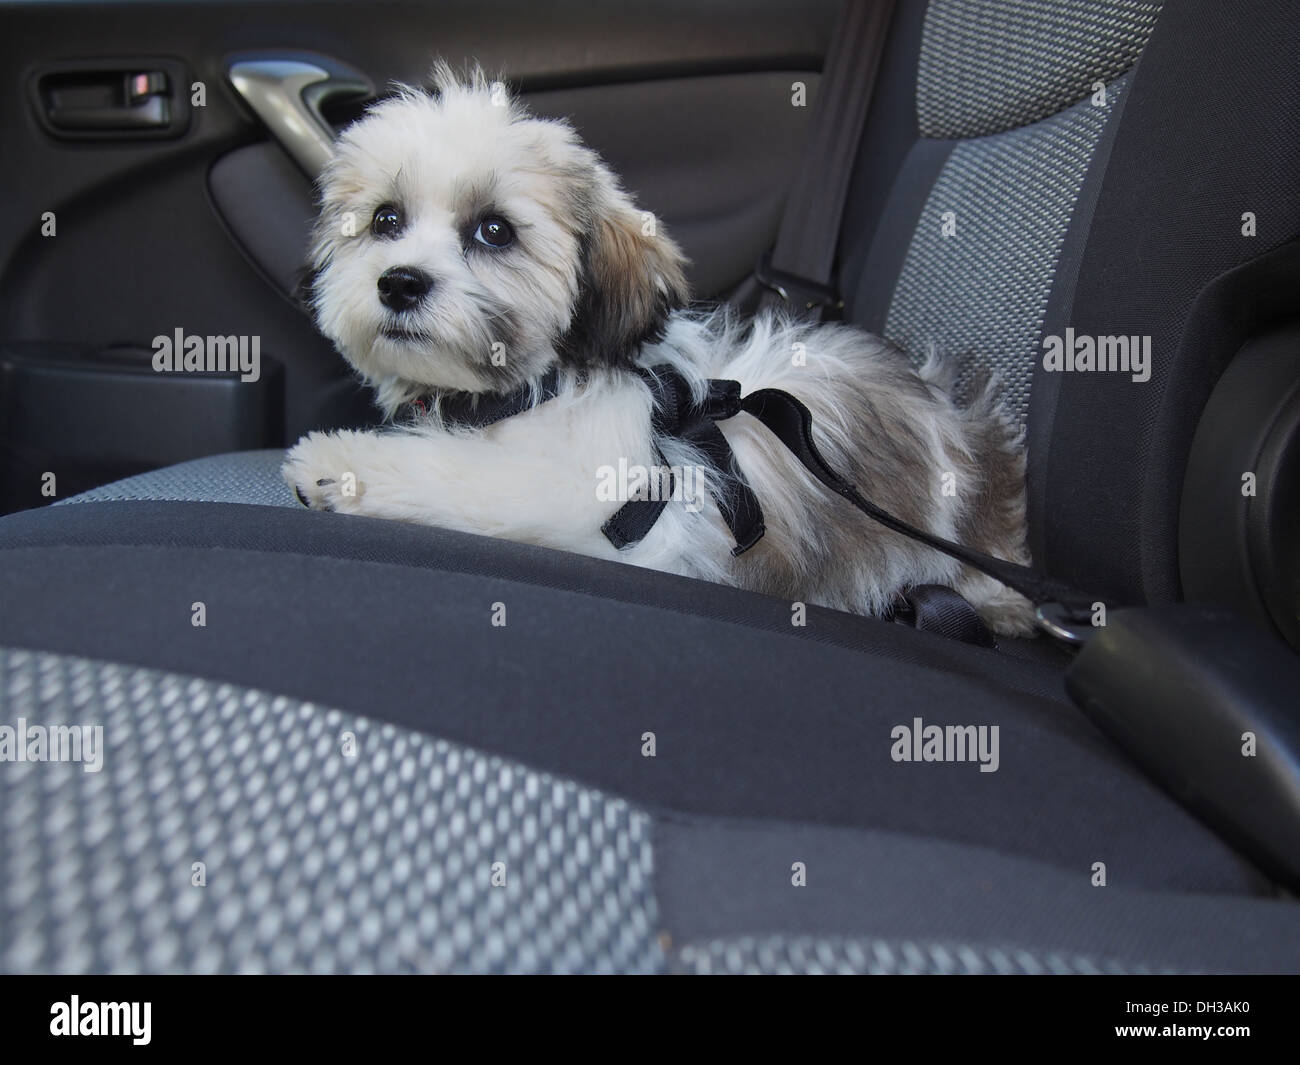 Car Harness Dog >> Teddy Bear puppy (a/k/a Zuchon, mix of Shih-Tzu and Bichon Frise Stock Photo: 62154484 - Alamy